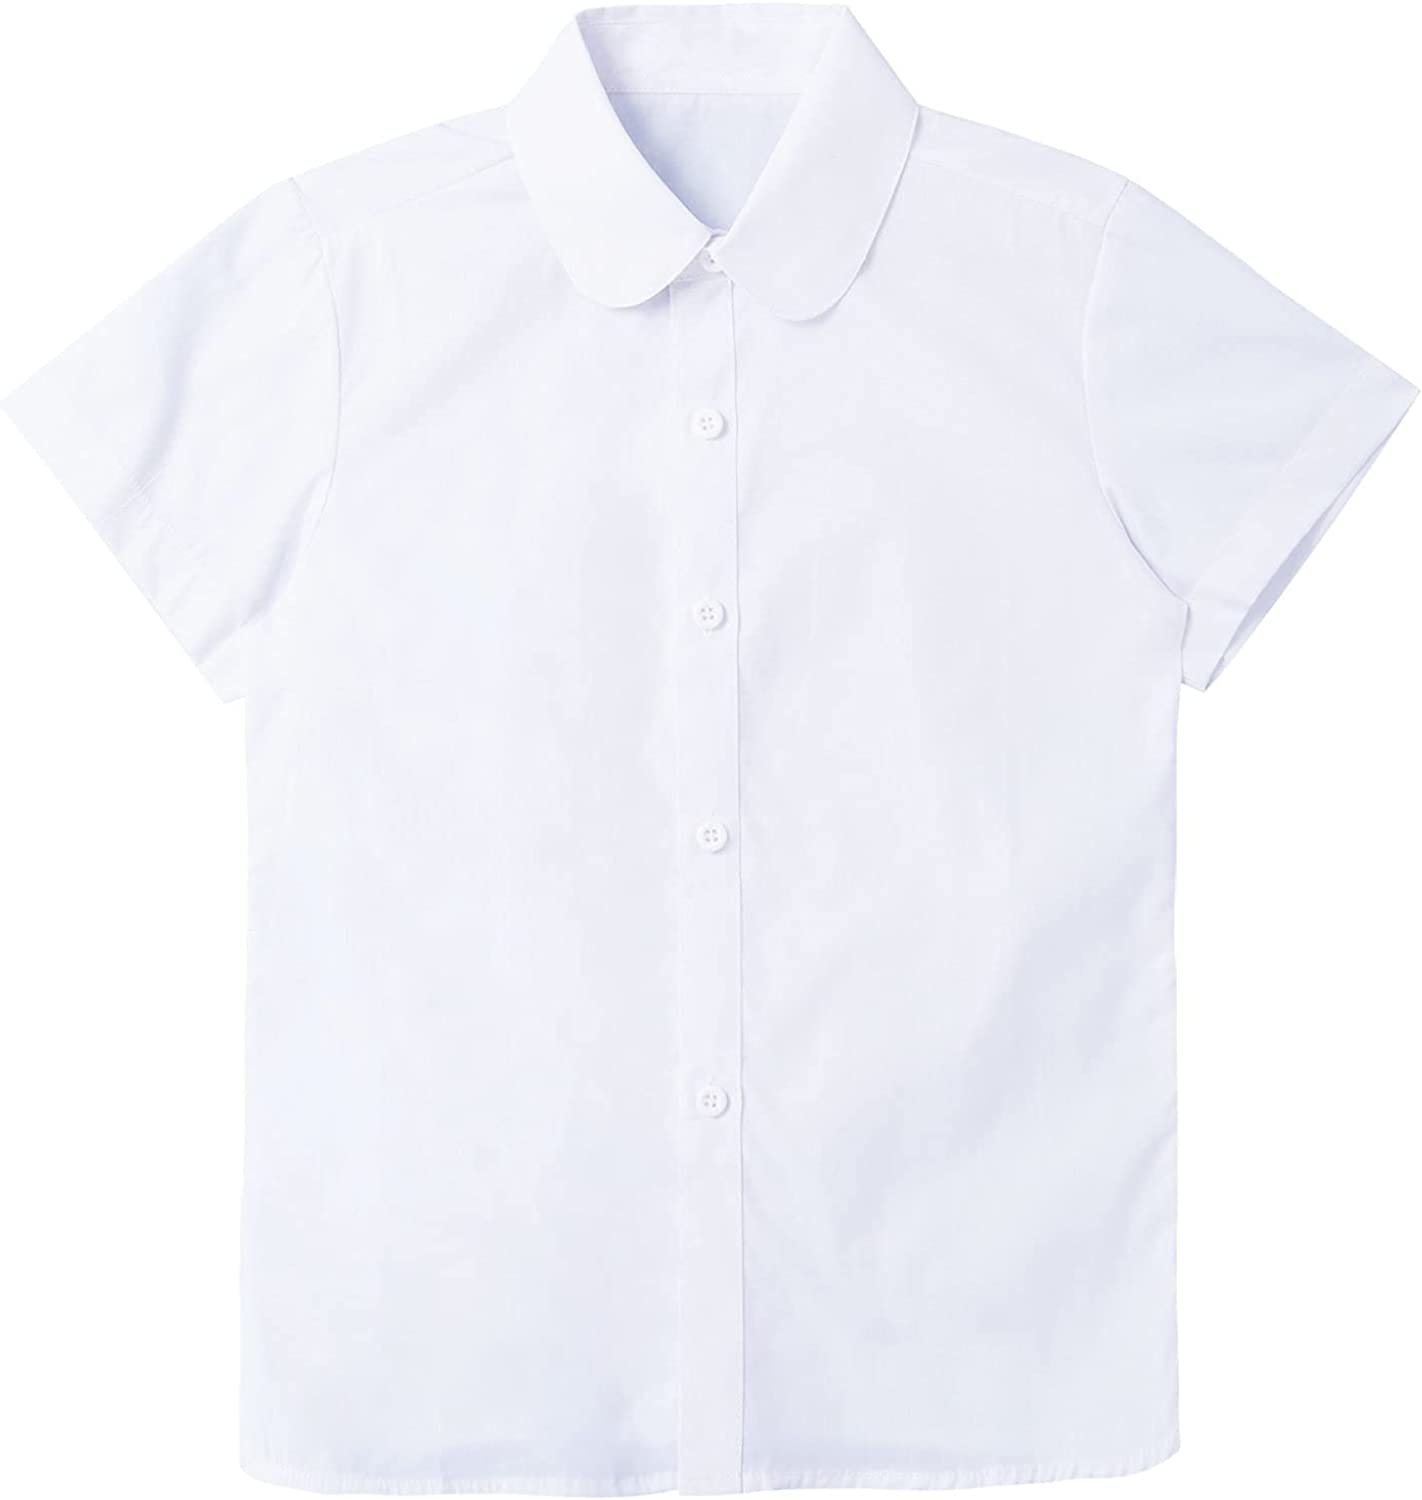 Sholeno Kids Girls Short Sleeve Button Down Shirt Tops Slim Fit School Daily Casual Blouse